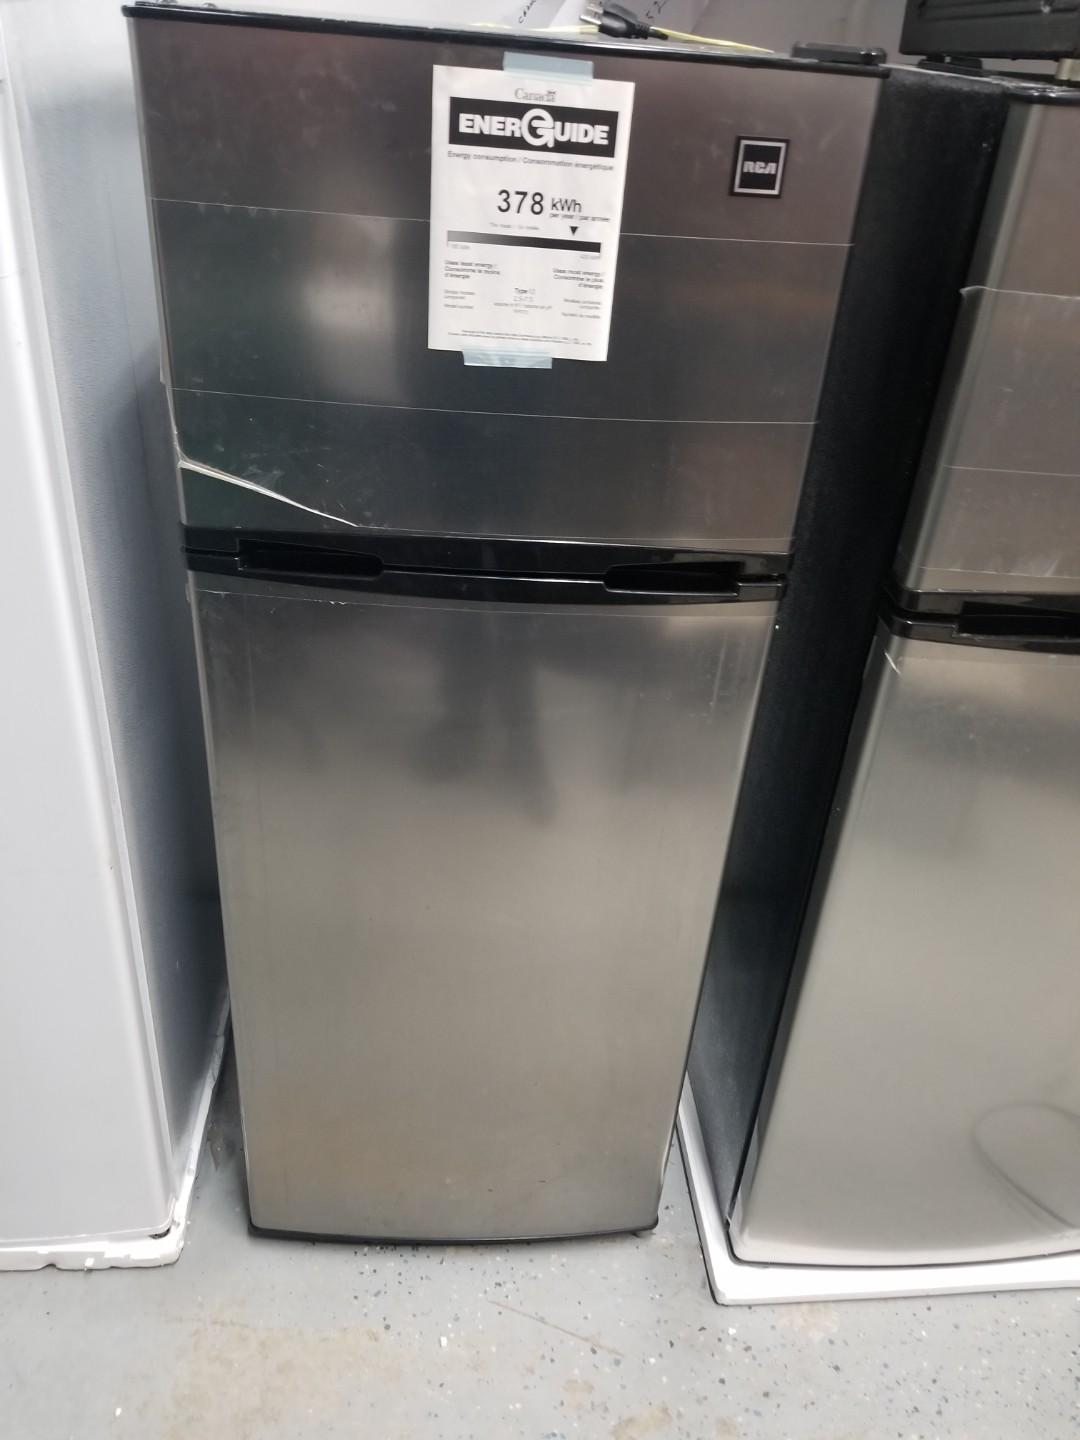 NEW YEAR SALE RCA FRIDGE STAINLESS STEEL 7.2 CU FT $270!